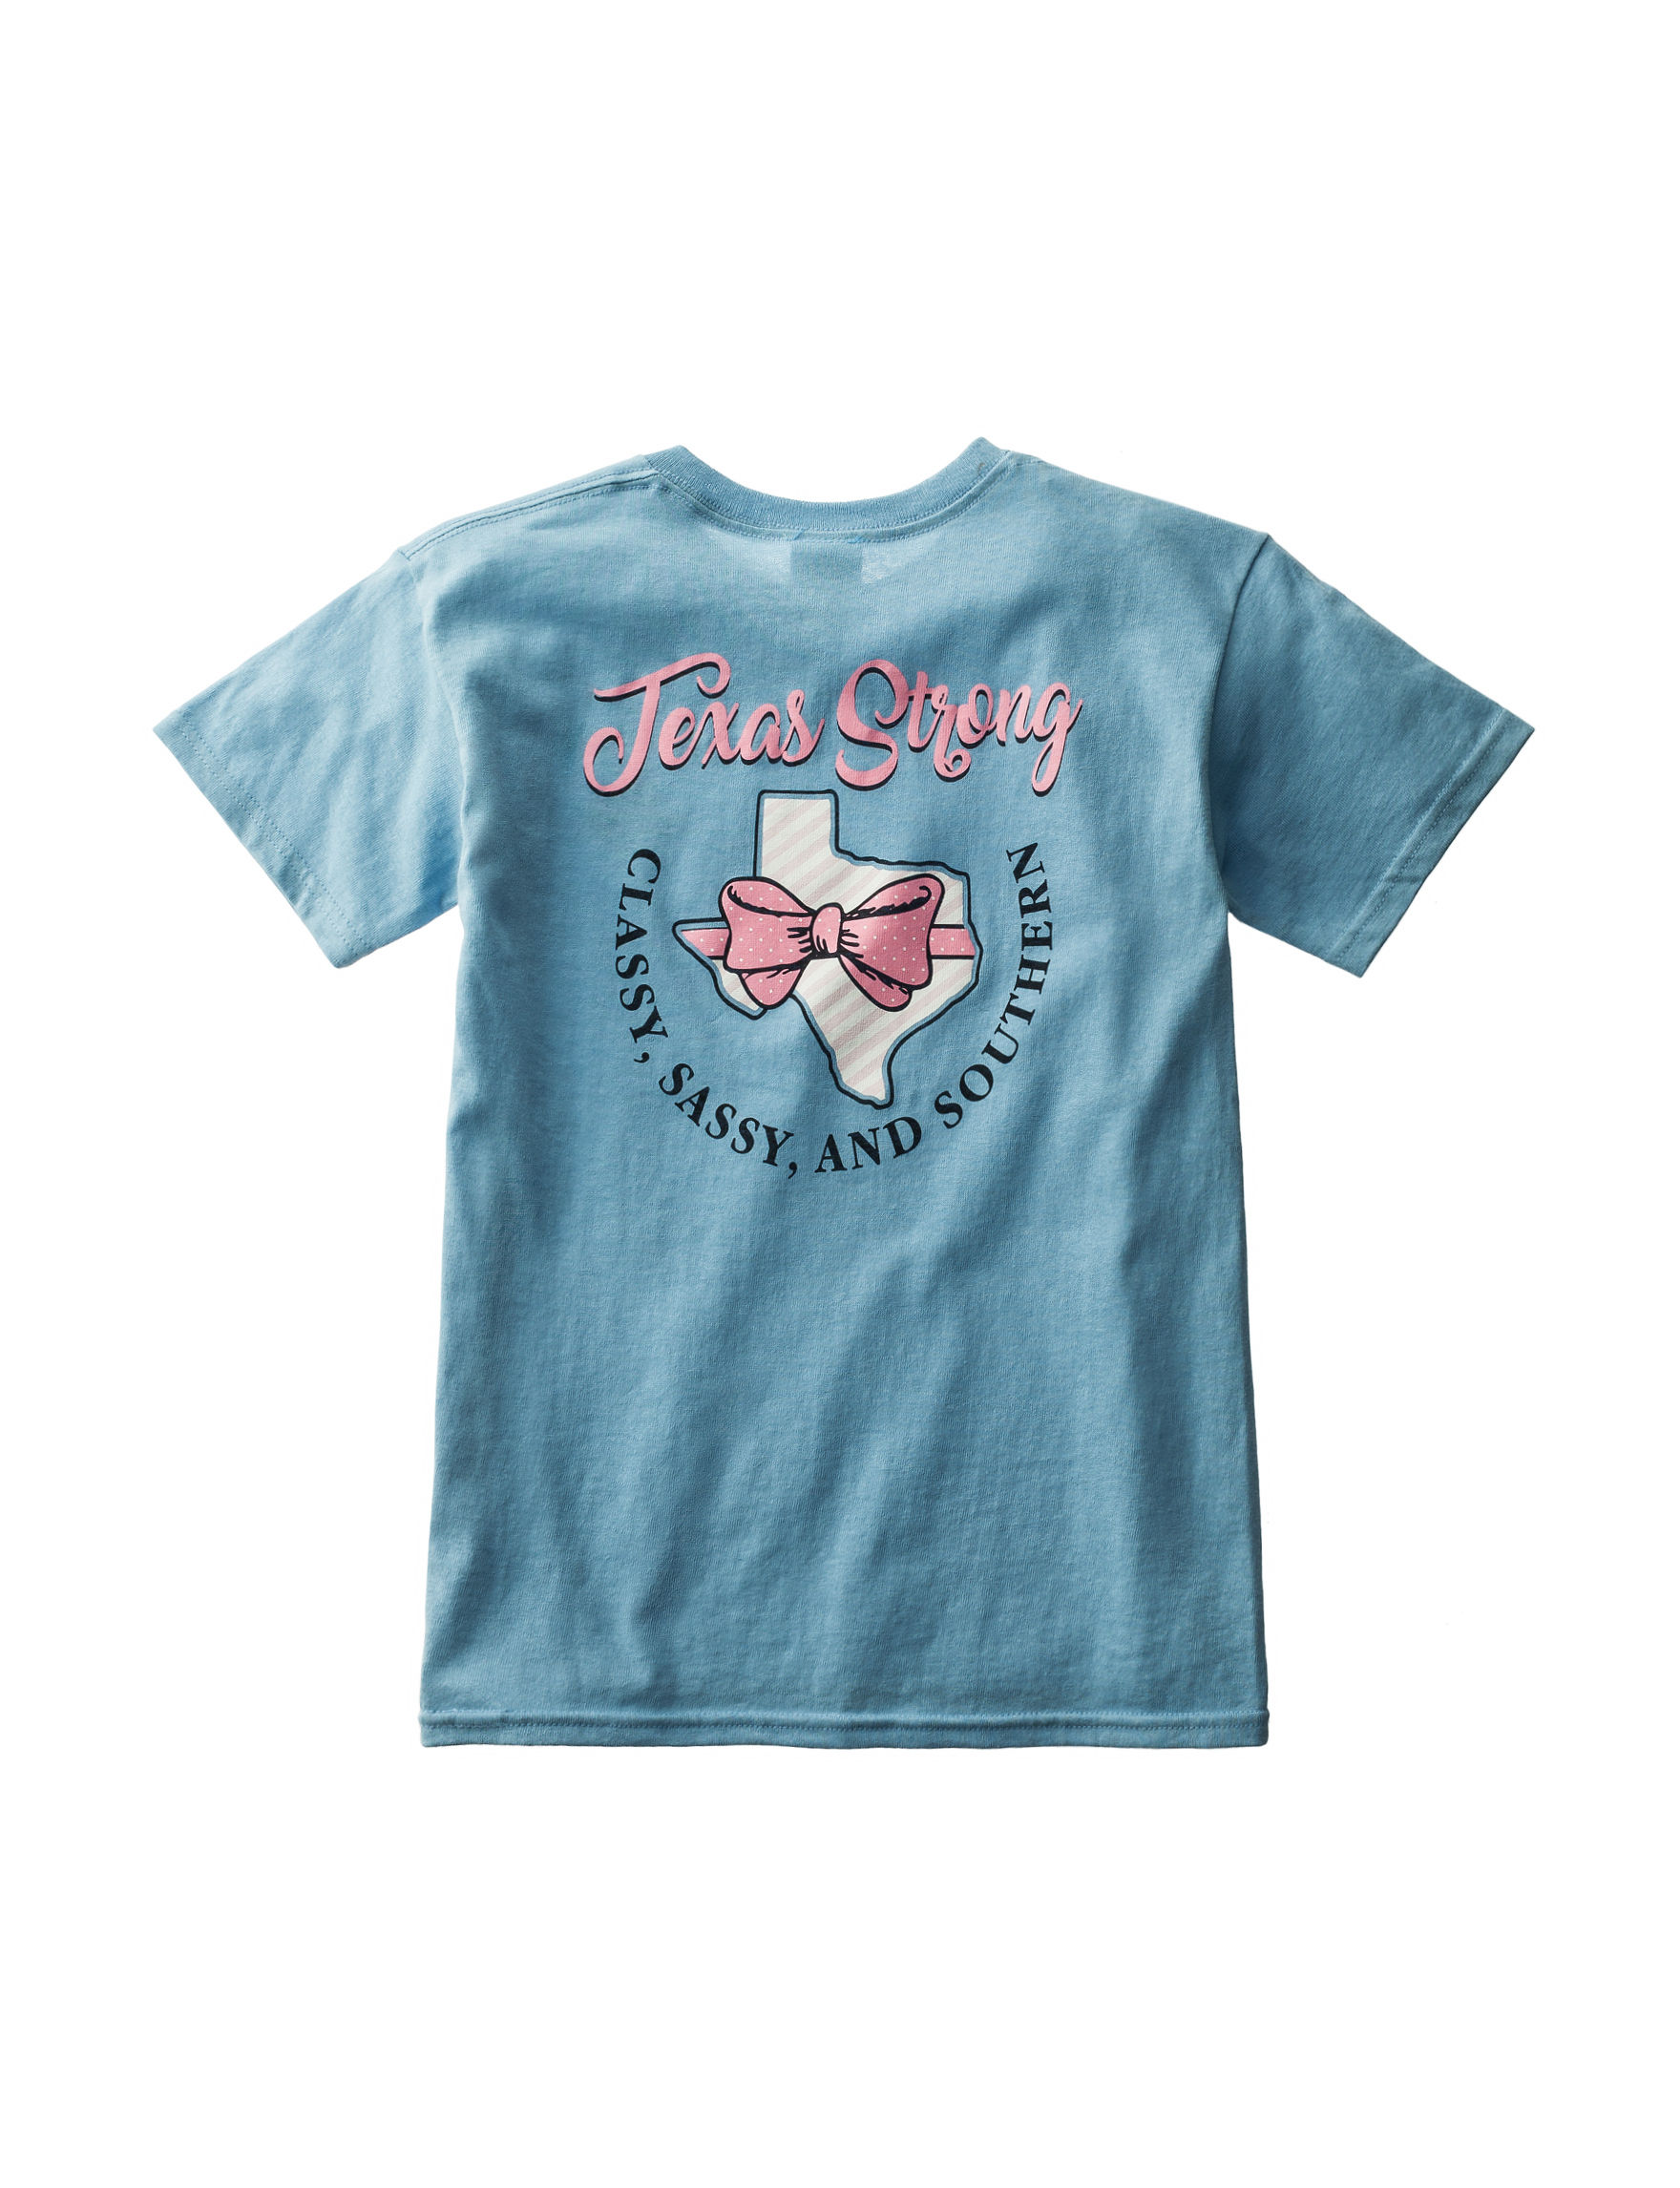 Soffe Sky Blue Tees & Tanks